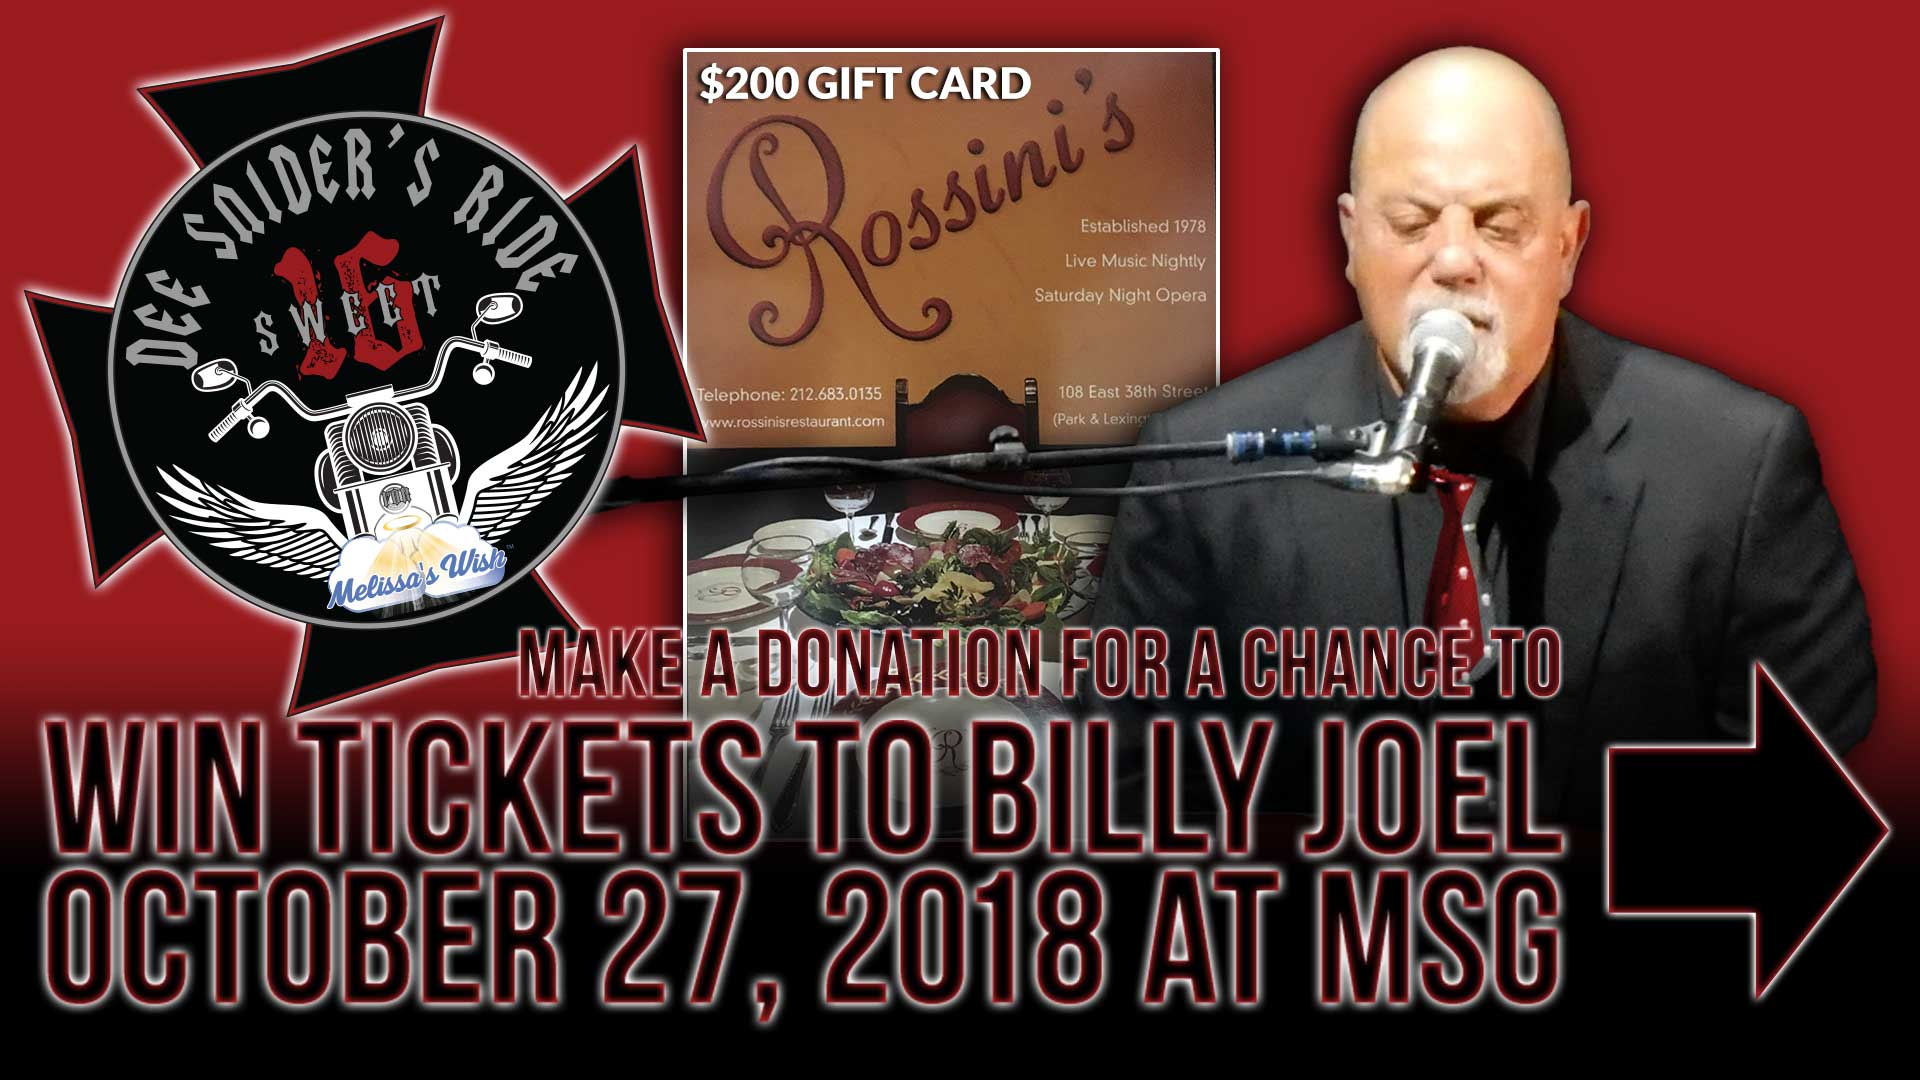 DONATE TO WIN TICKETS TO  BILLY JOEL at MSG